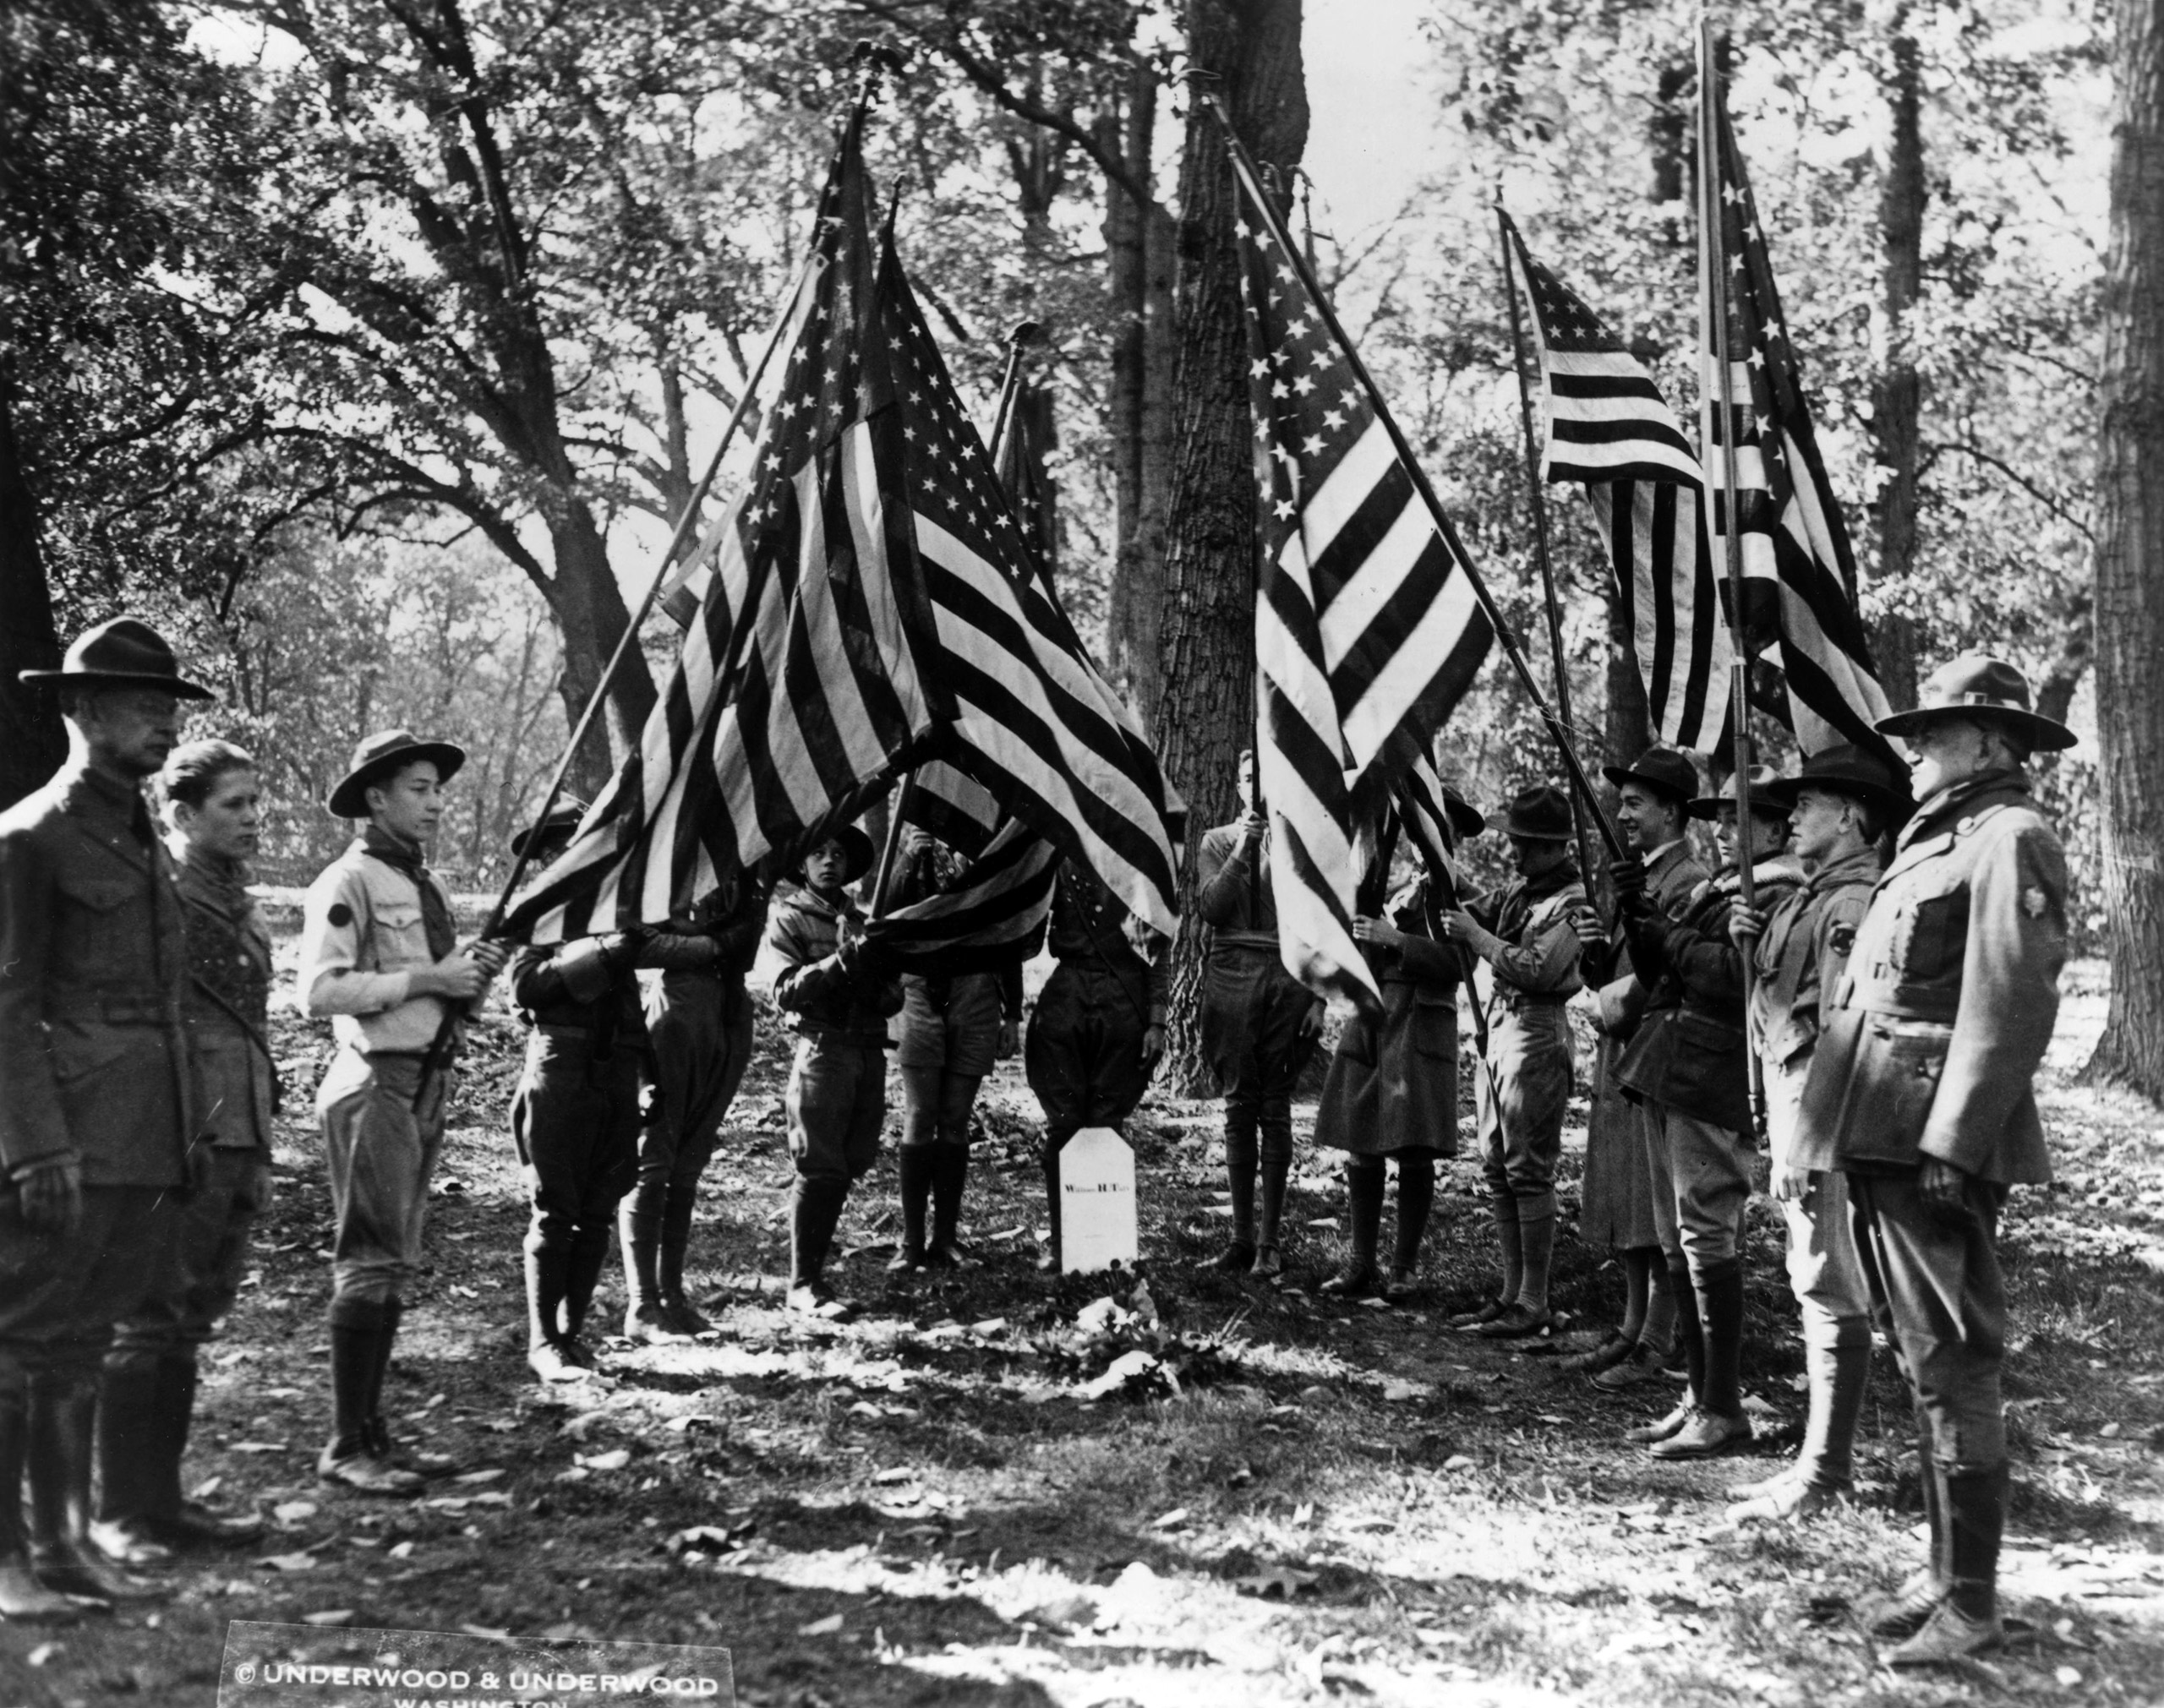 A delegation of boy scouts at the grave of former President William Howard Taft in Arlington National Cemetery, Washington D.C., six months after his death. 1930.